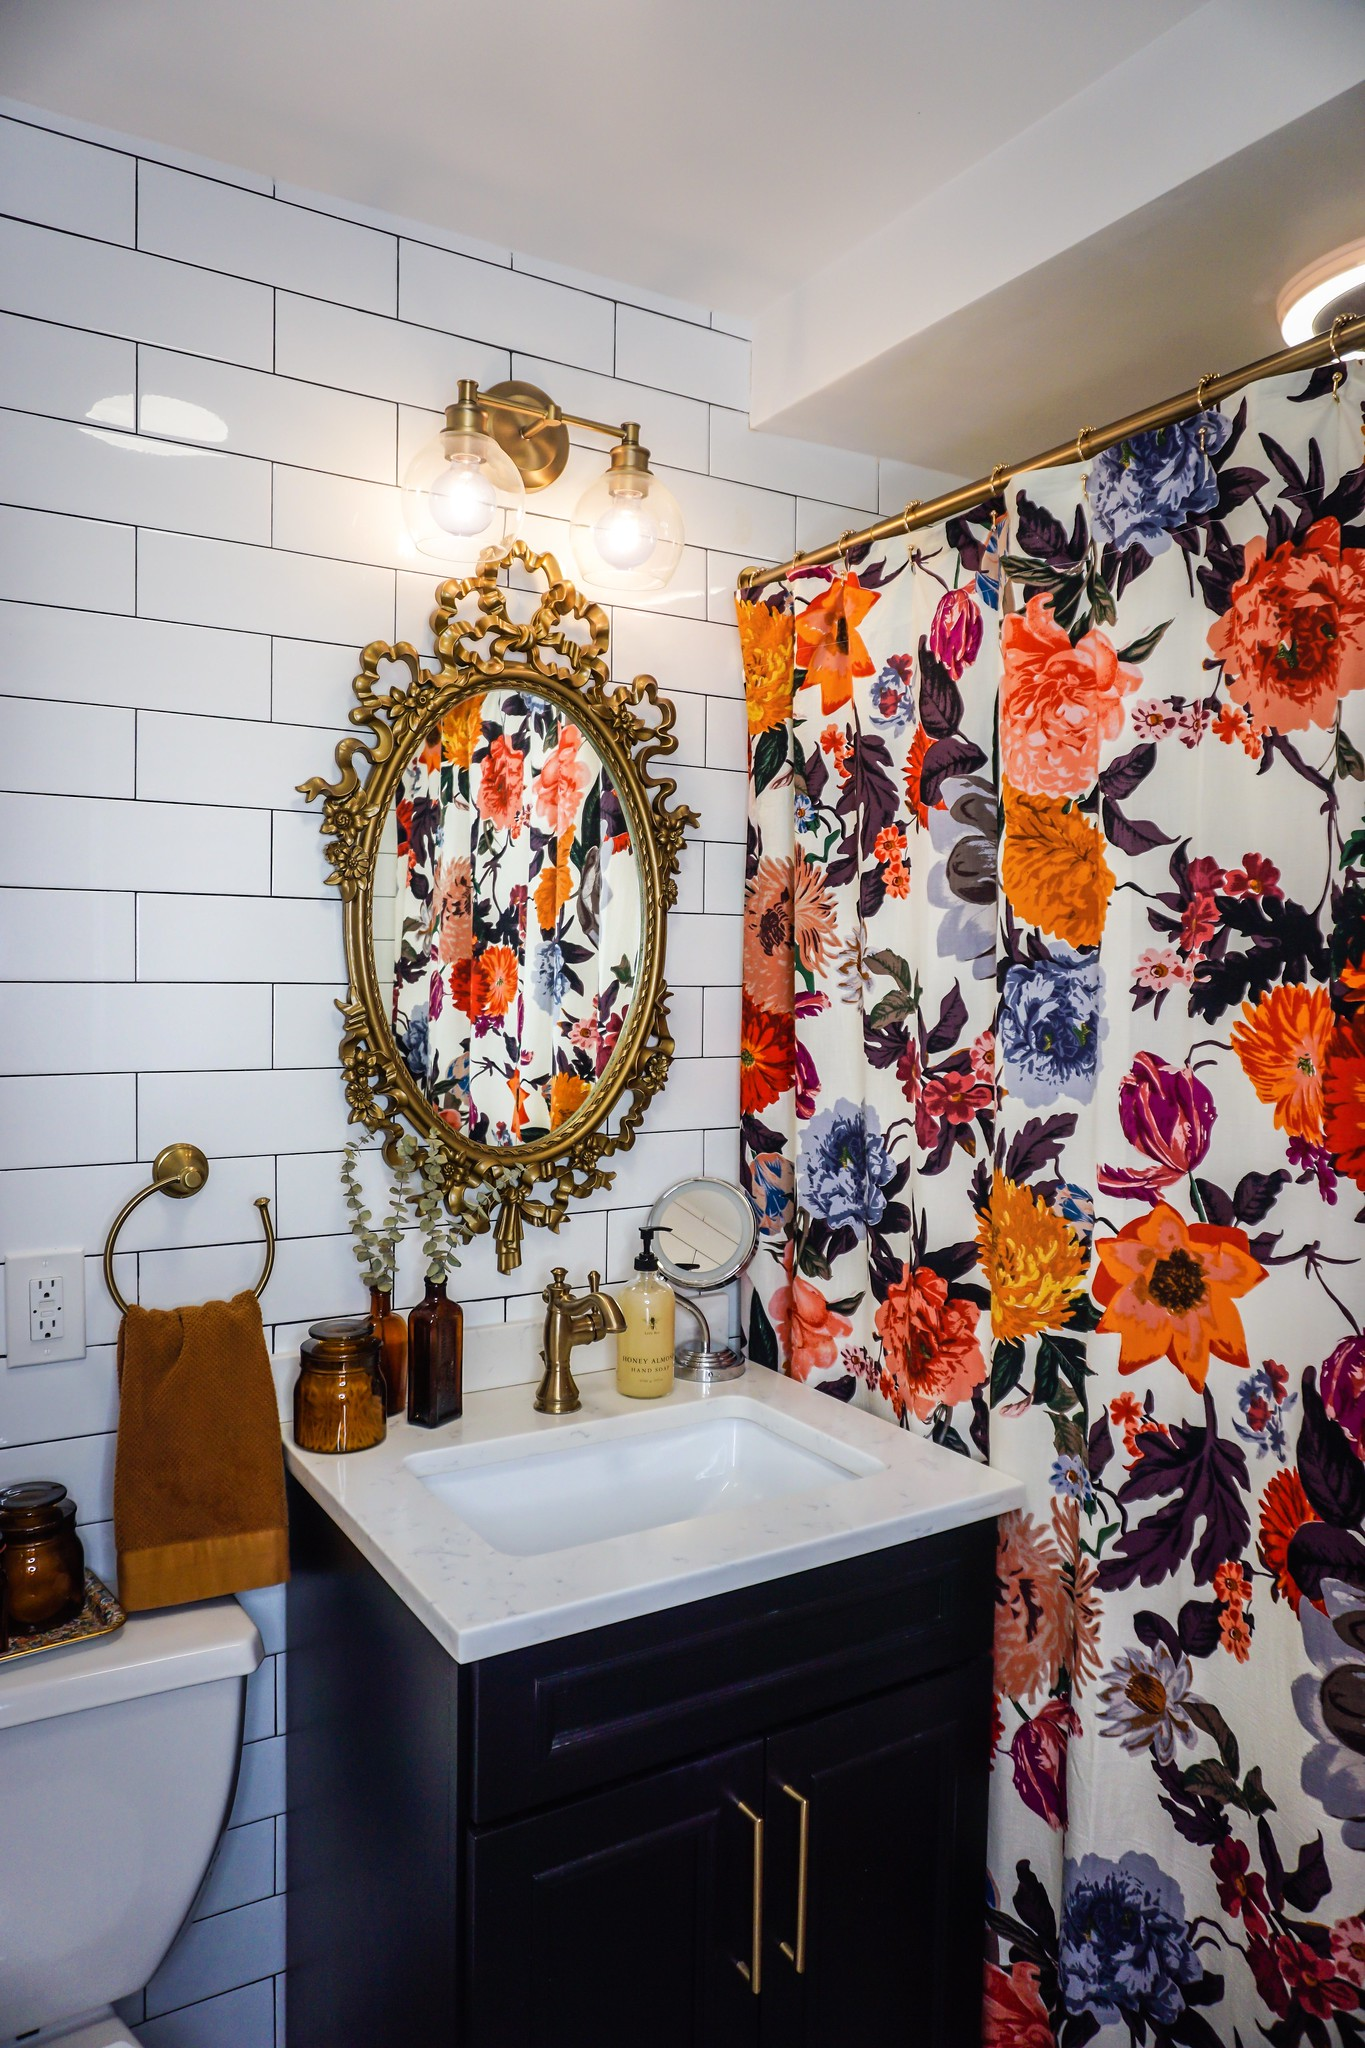 Burnt Orange Glass Canisters in Bathroom | Gold Vintage Mirror | Floral Shower Curtain | Small Bathroom Inspiration